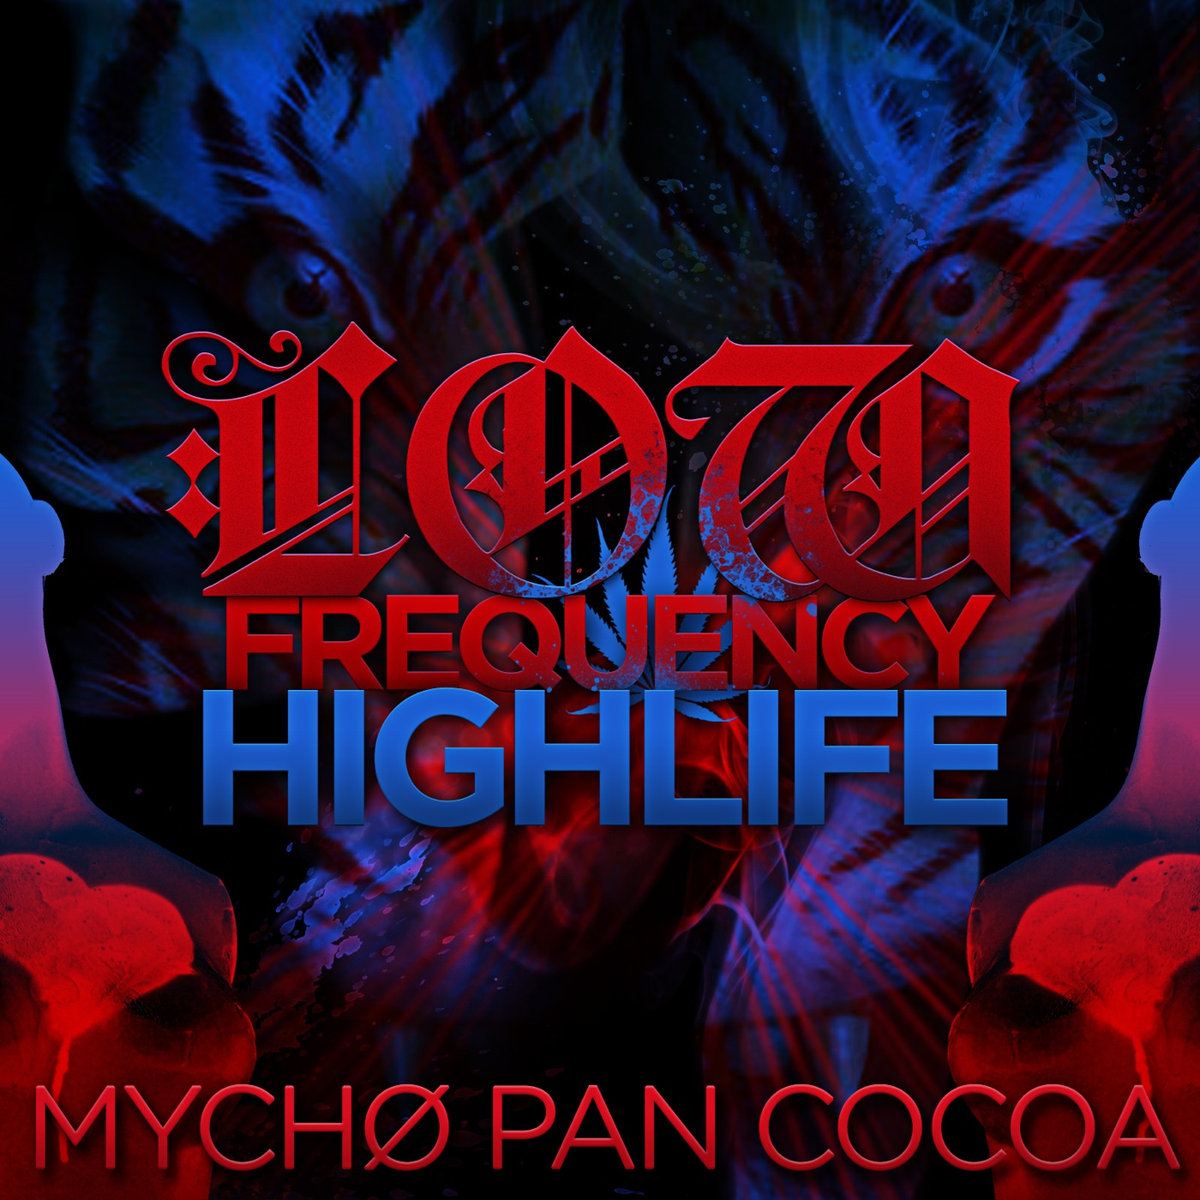 Mycho Pan Cocoa - Porto Mental (Ribotto Remix) @ 'Low Frequency High Life' album (electronic, dubstep)